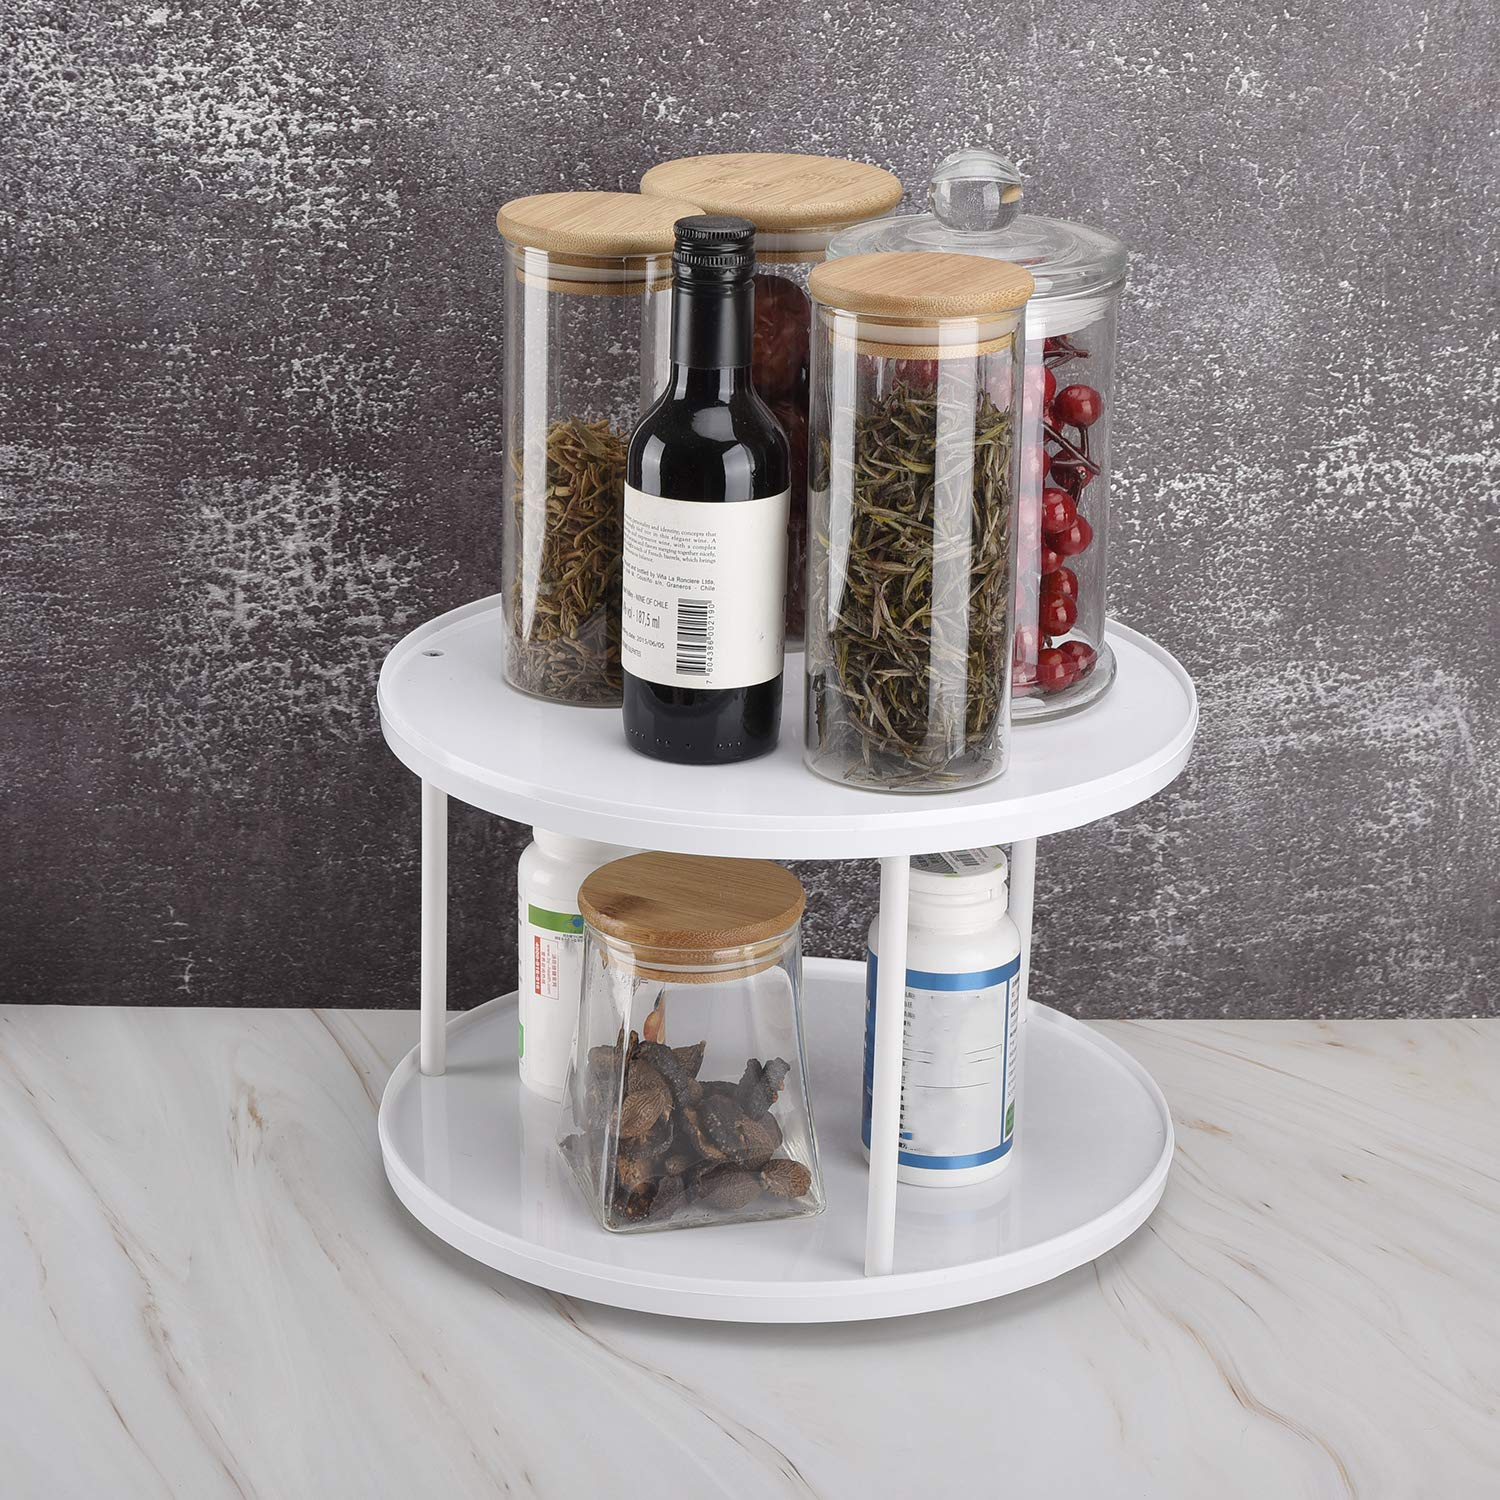 TamBee 2 Tier lazy susan turntable 360-degree Plastic lazy susan organizer use for a spice organizer or kitchen cabinet organizers 10.6 Inch